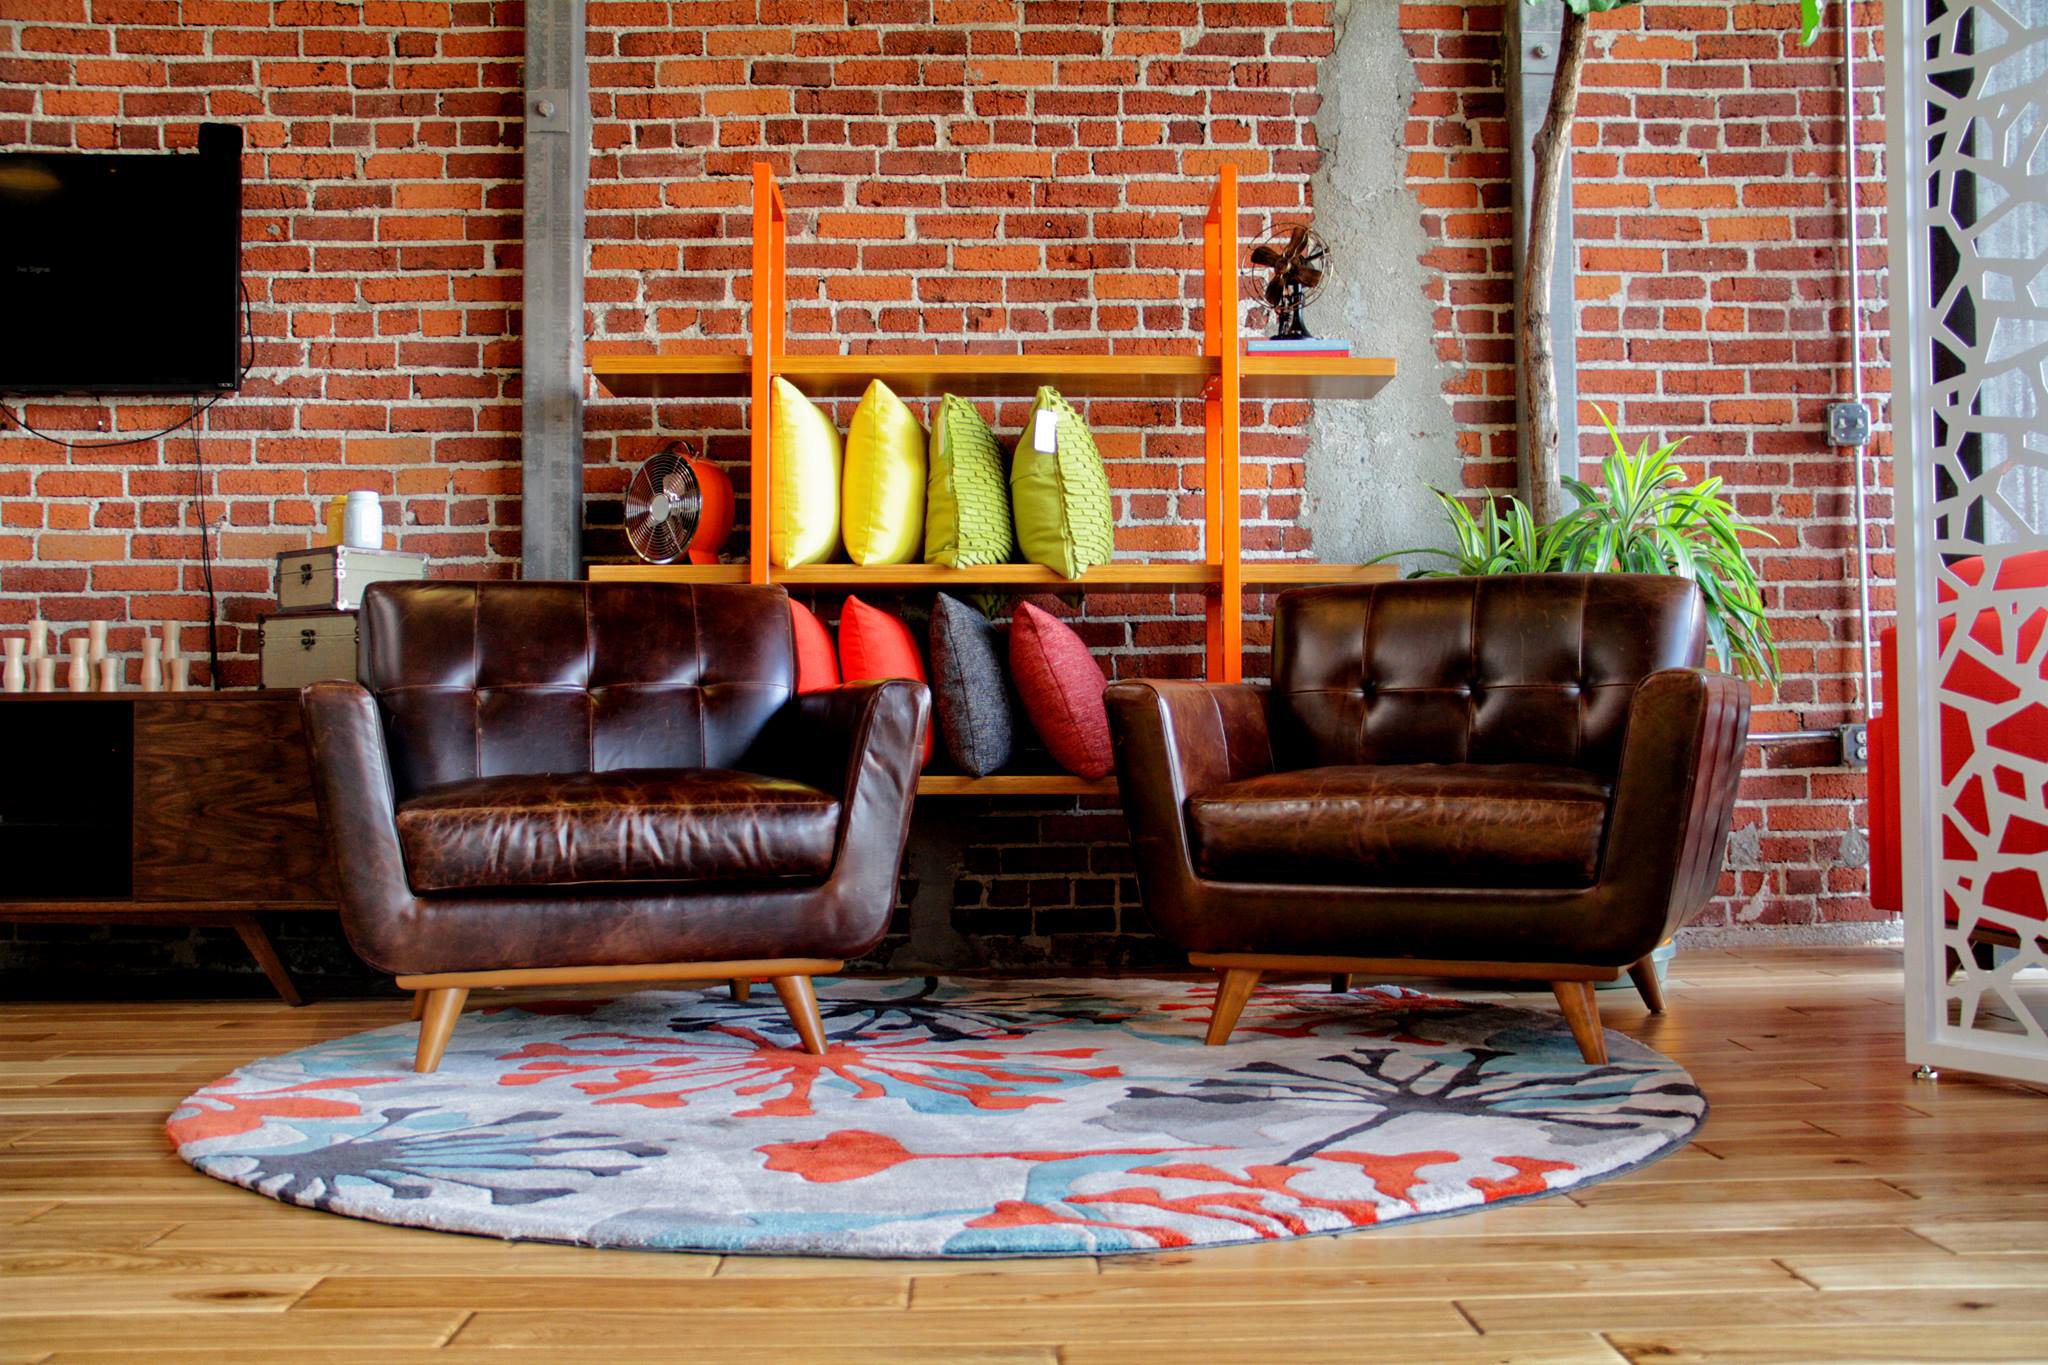 The Best Furniture Stores And Home Decor Shops In Los Angeles